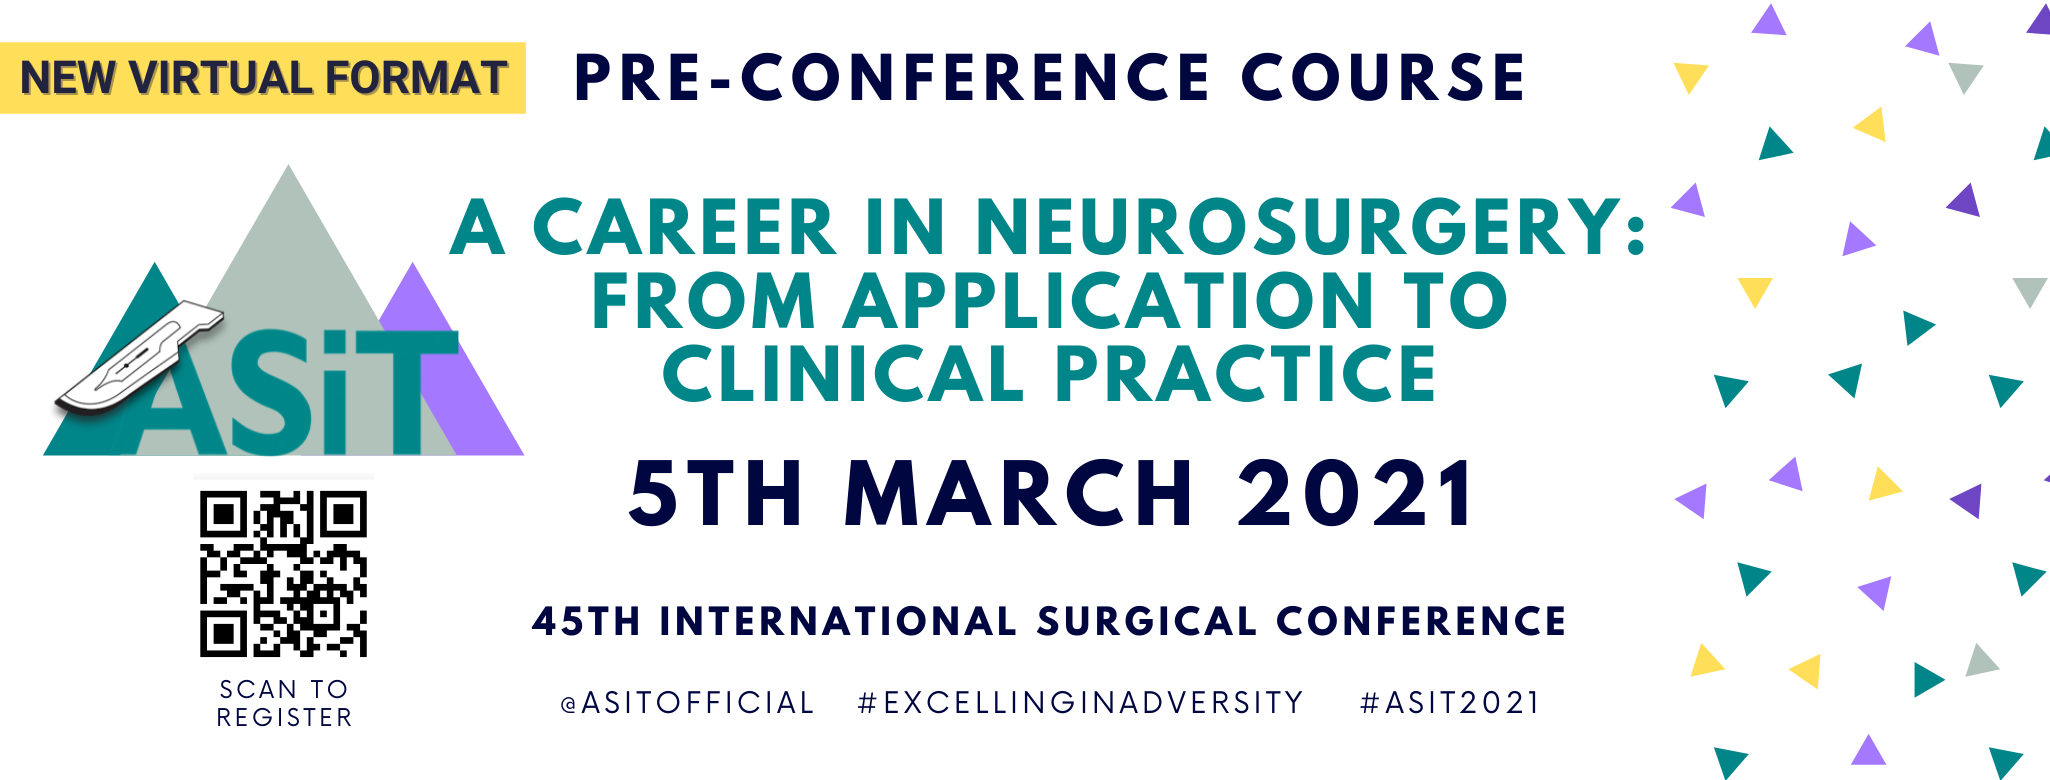 A Career in Neurosurgery: Pre-Conference Course